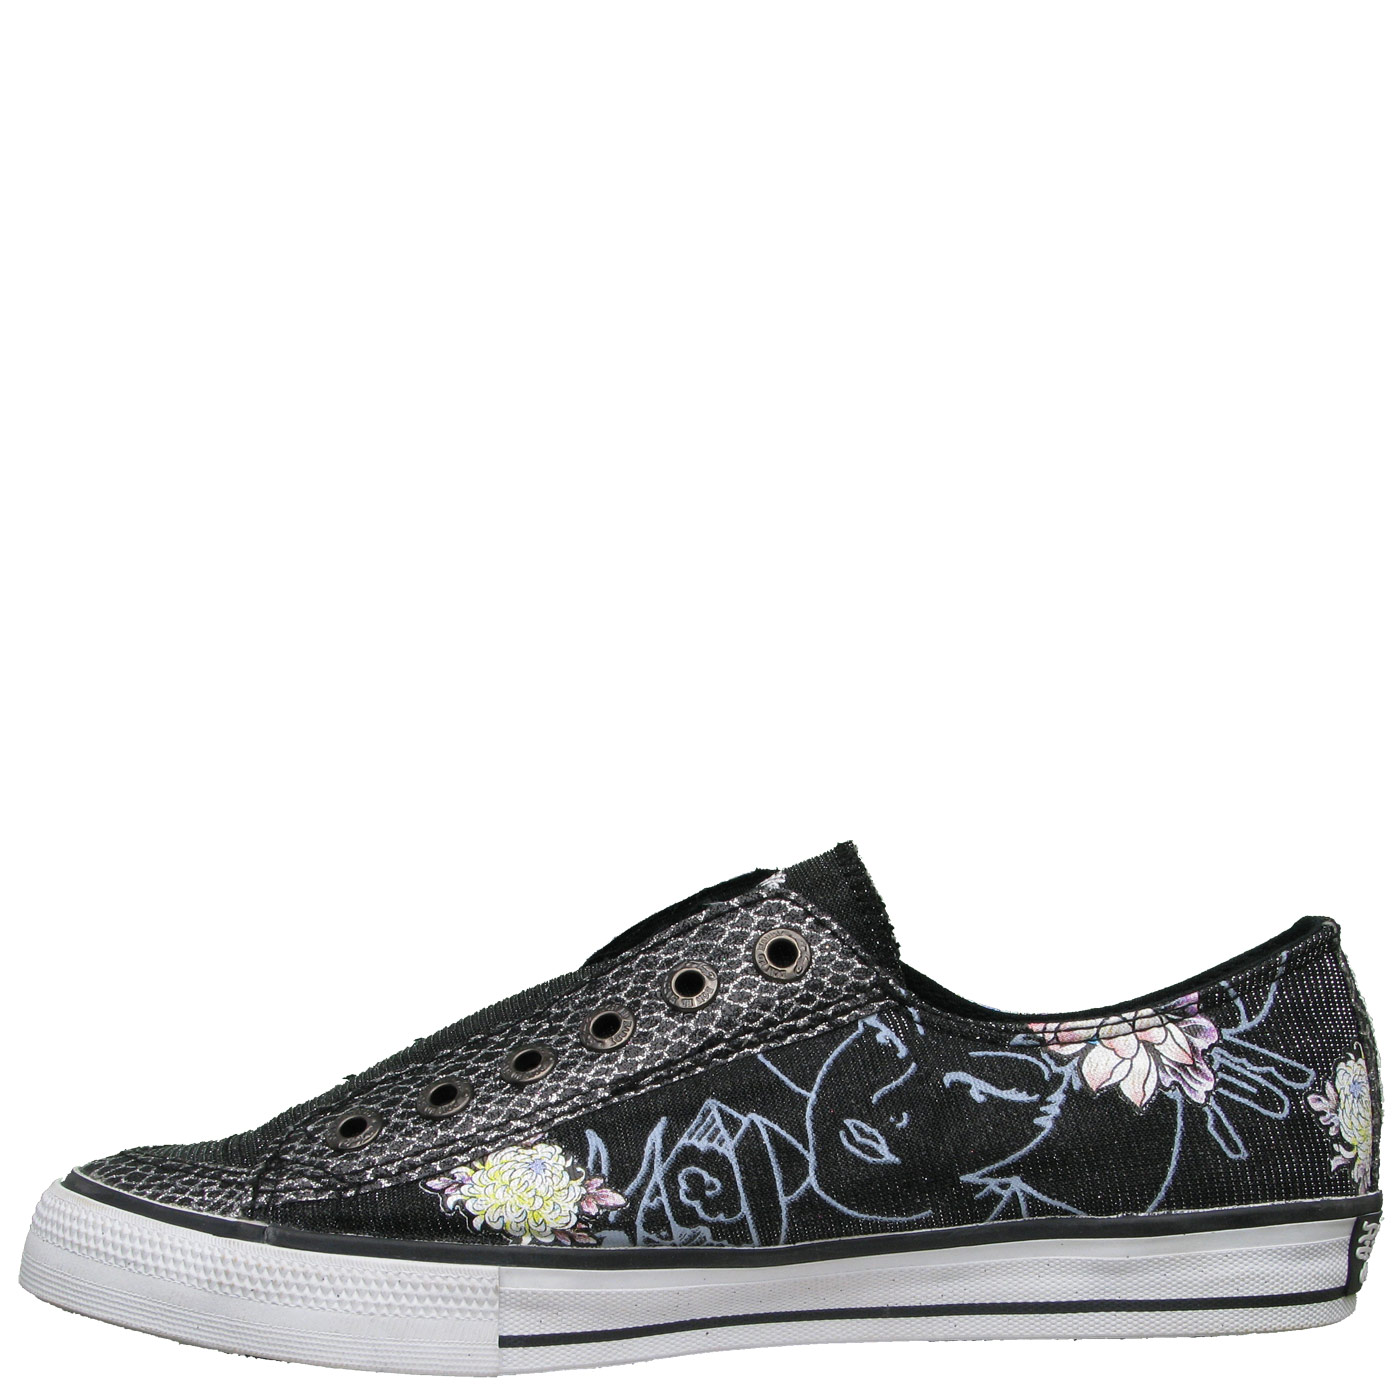 Ed Hardy Lowrise Glitter Shoe for Women - Black